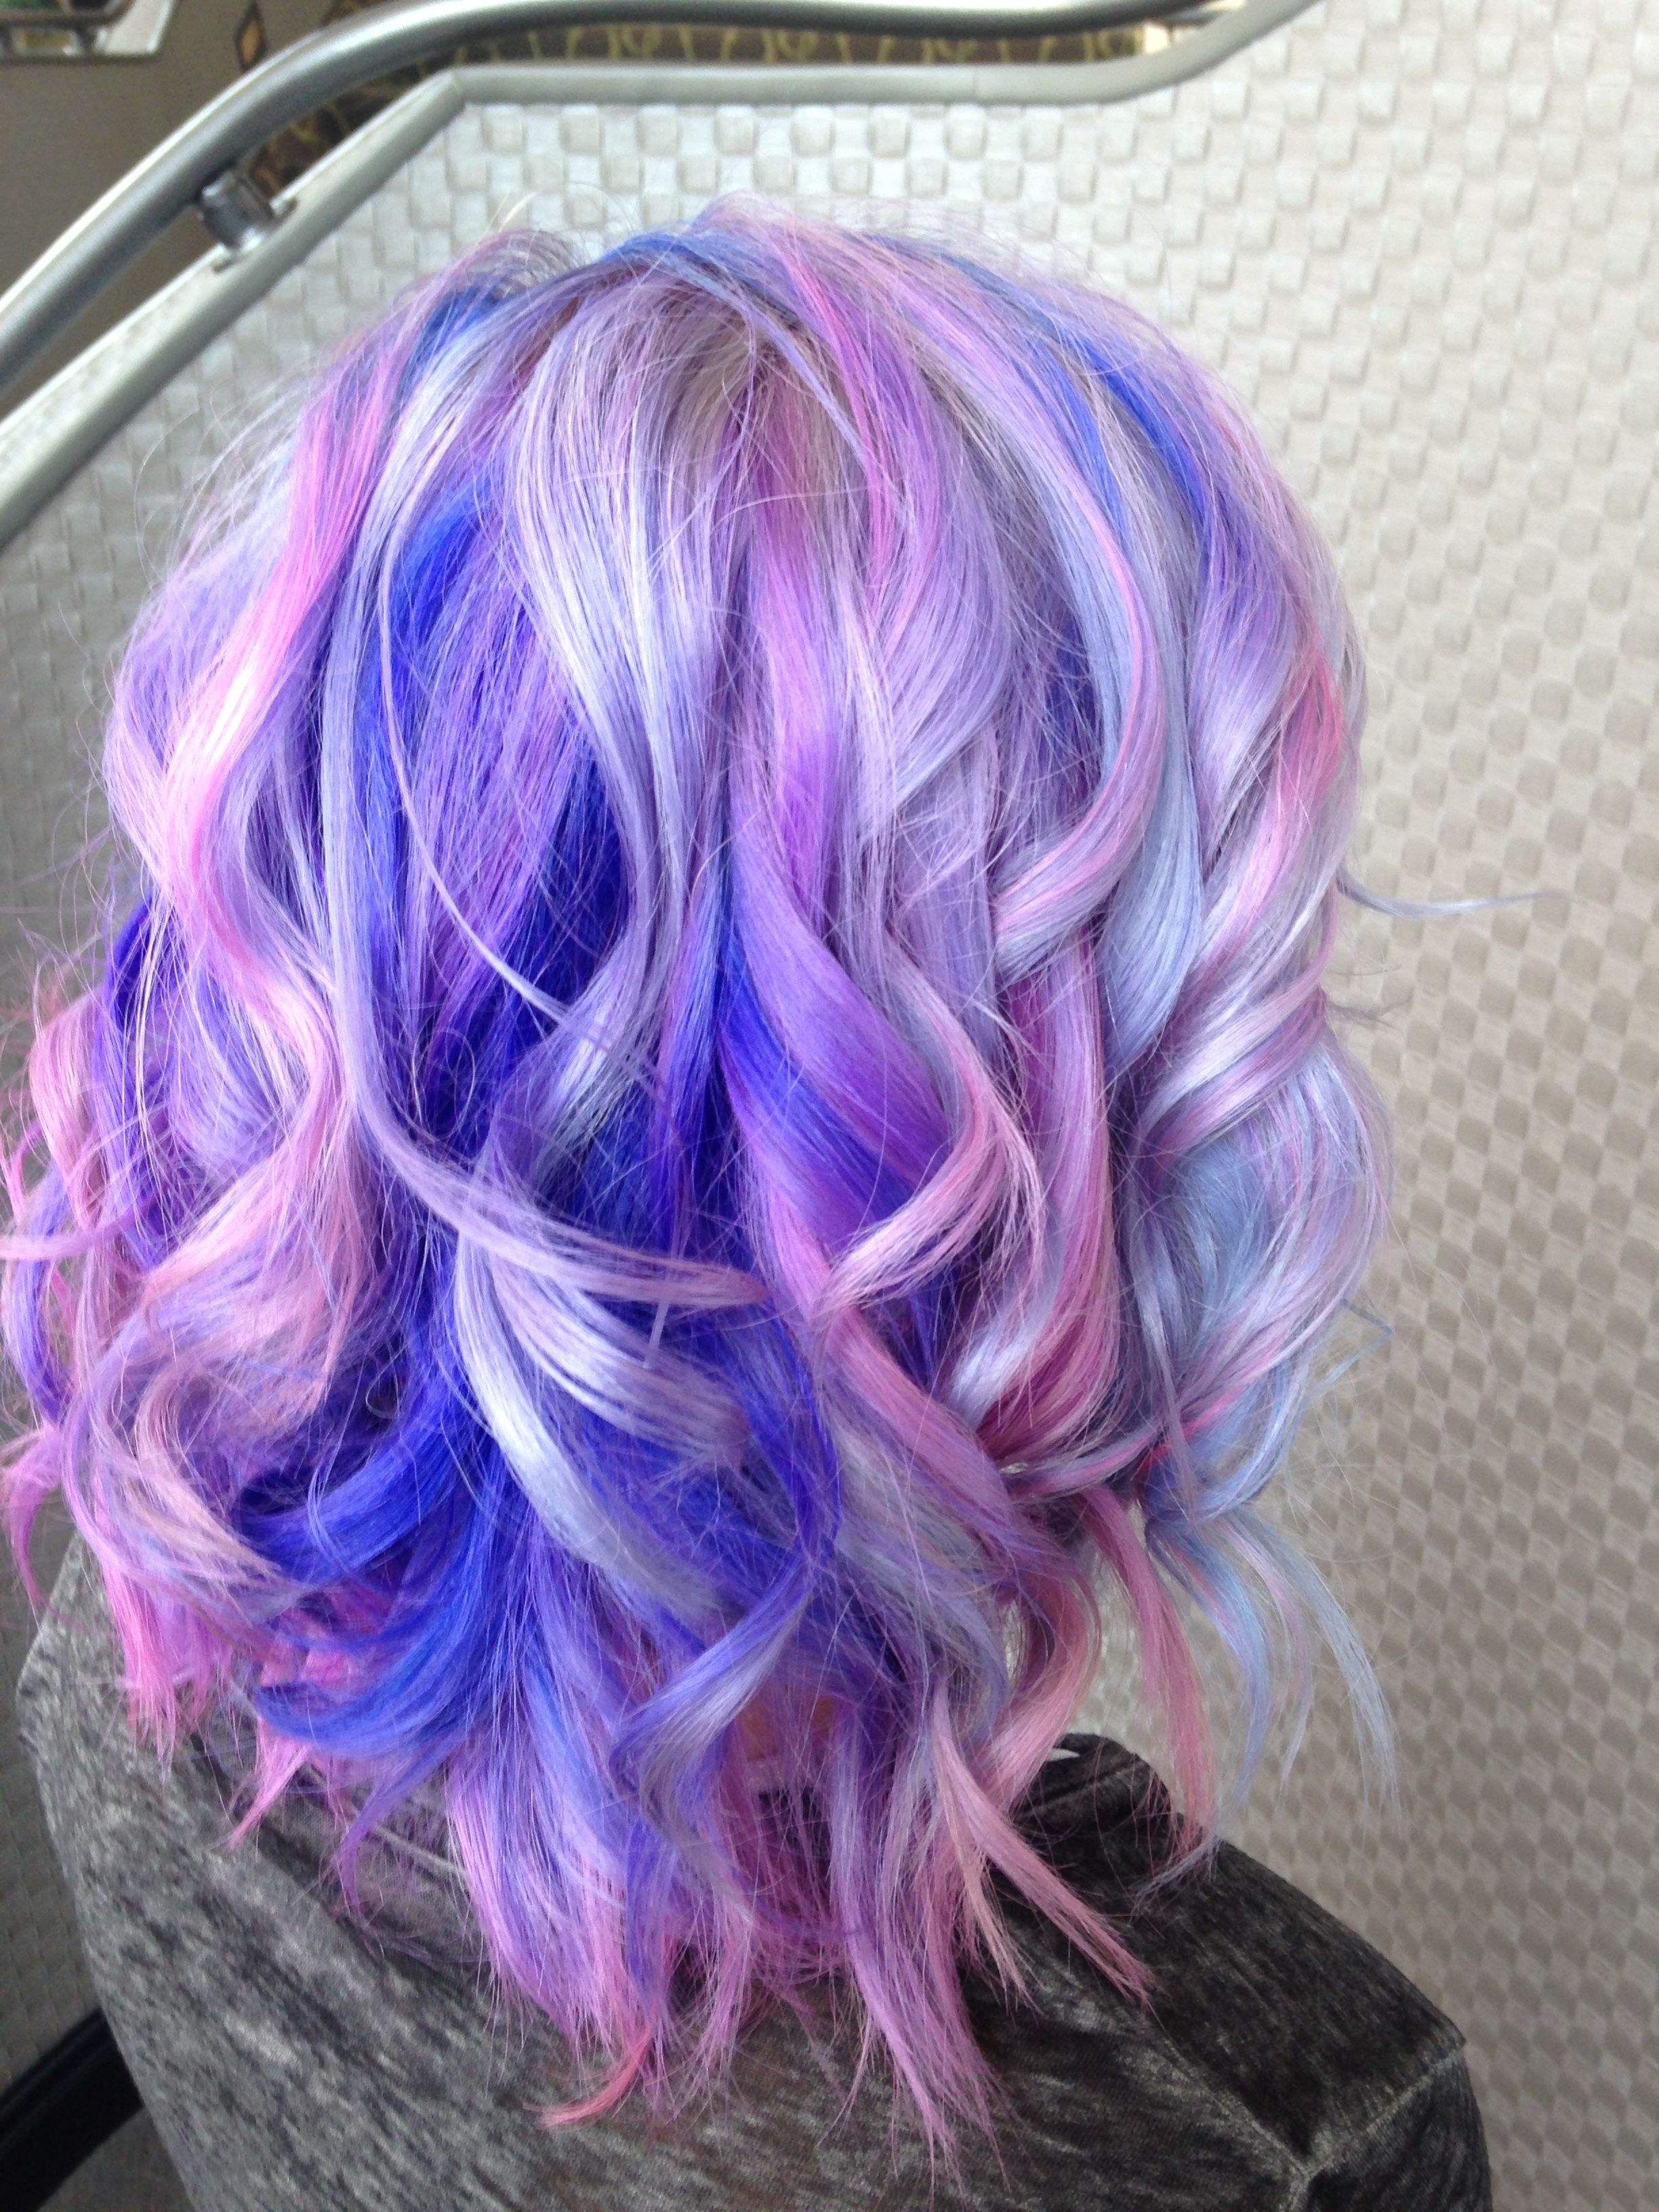 Pastel Cloudy Lavender Blue Pink Silver Hair Curled 3 Lavender